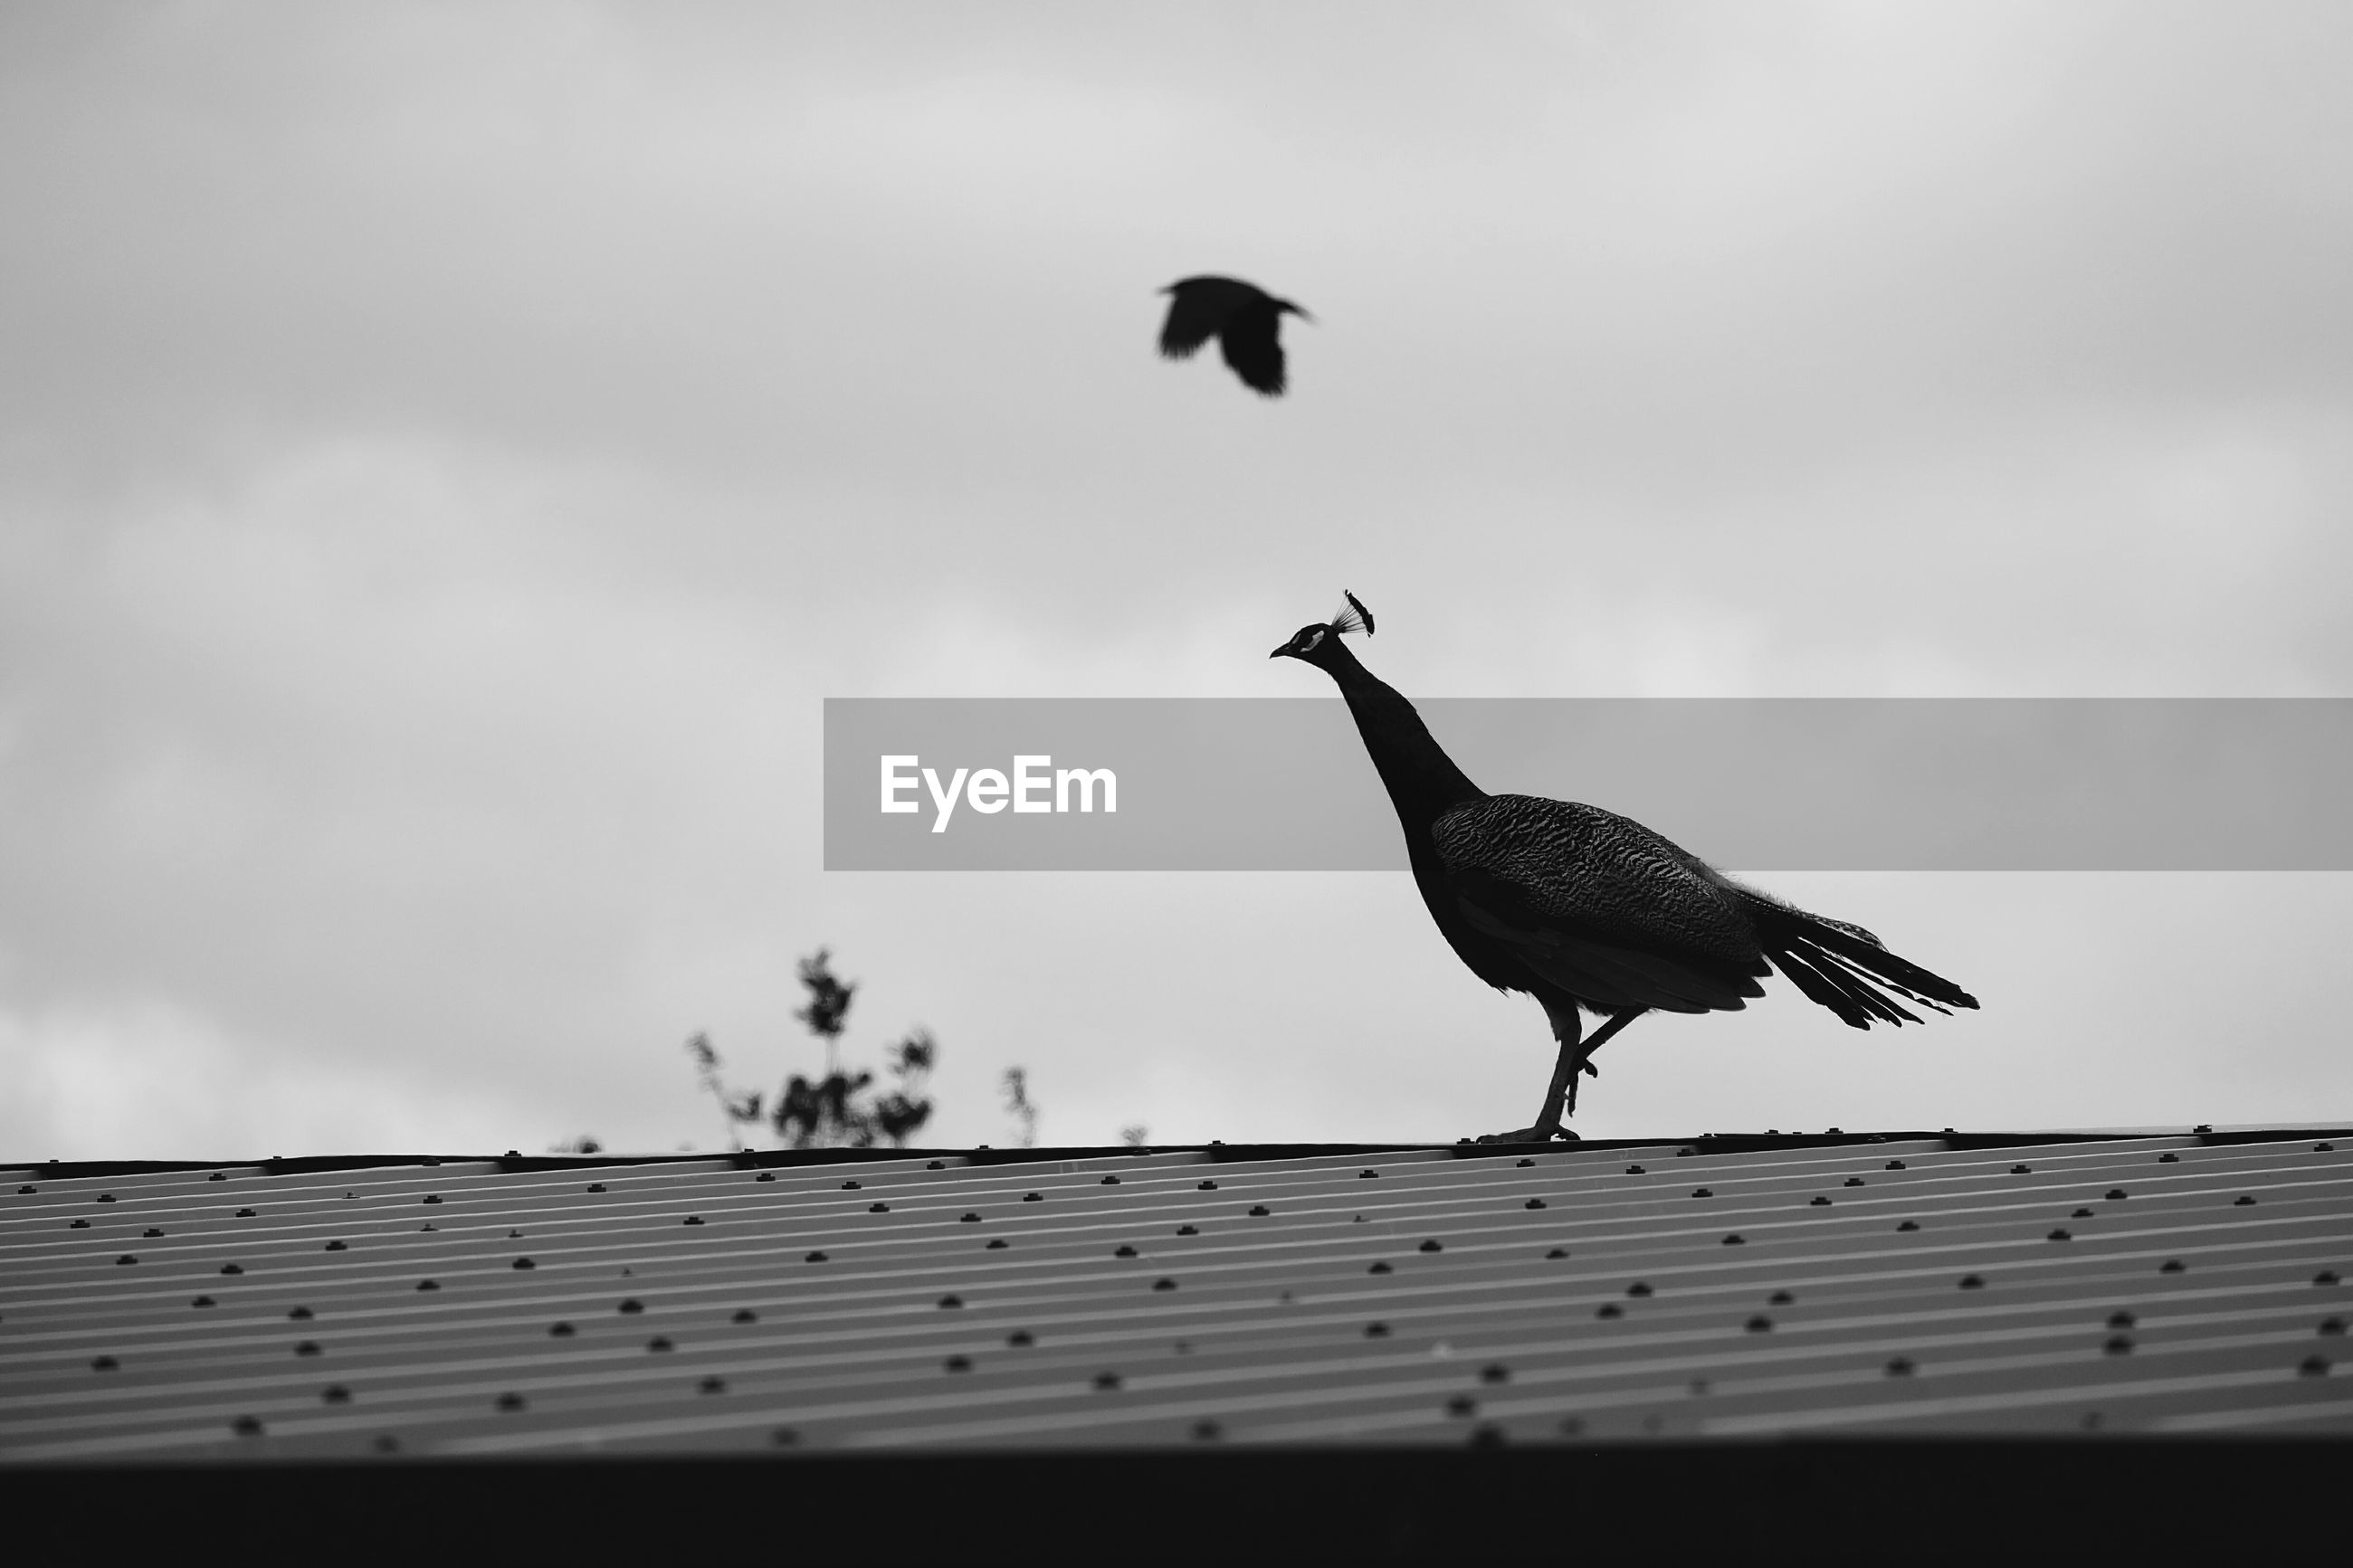 Low angle view of peahen on roof against sky